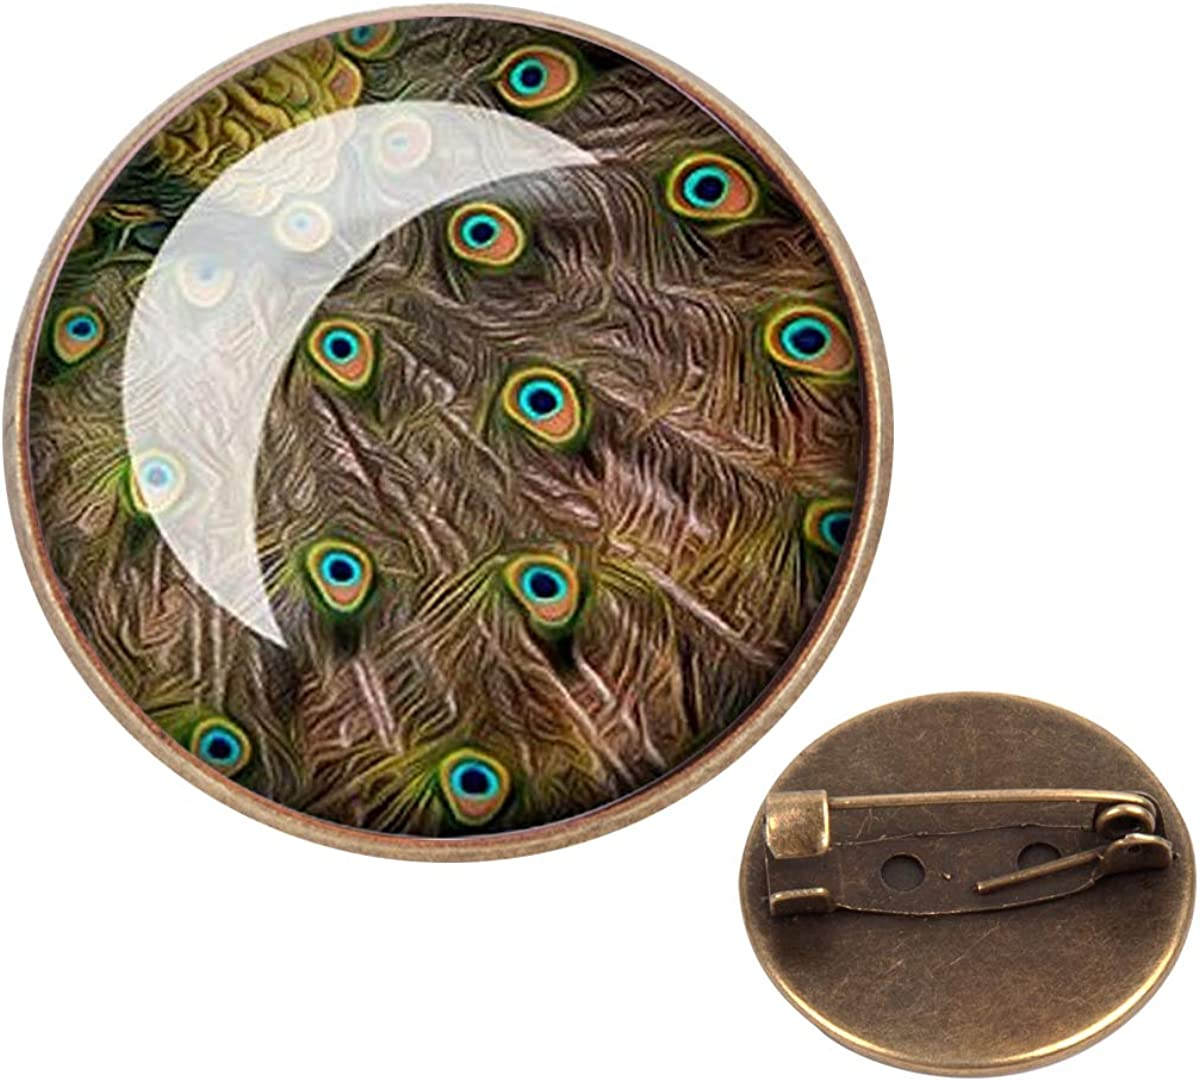 Pinback Buttons Badges Pins Peacock Feather Lapel Pin Brooch Clip Trendy Accessory Jacket T-Shirt Bag Hat Shoe